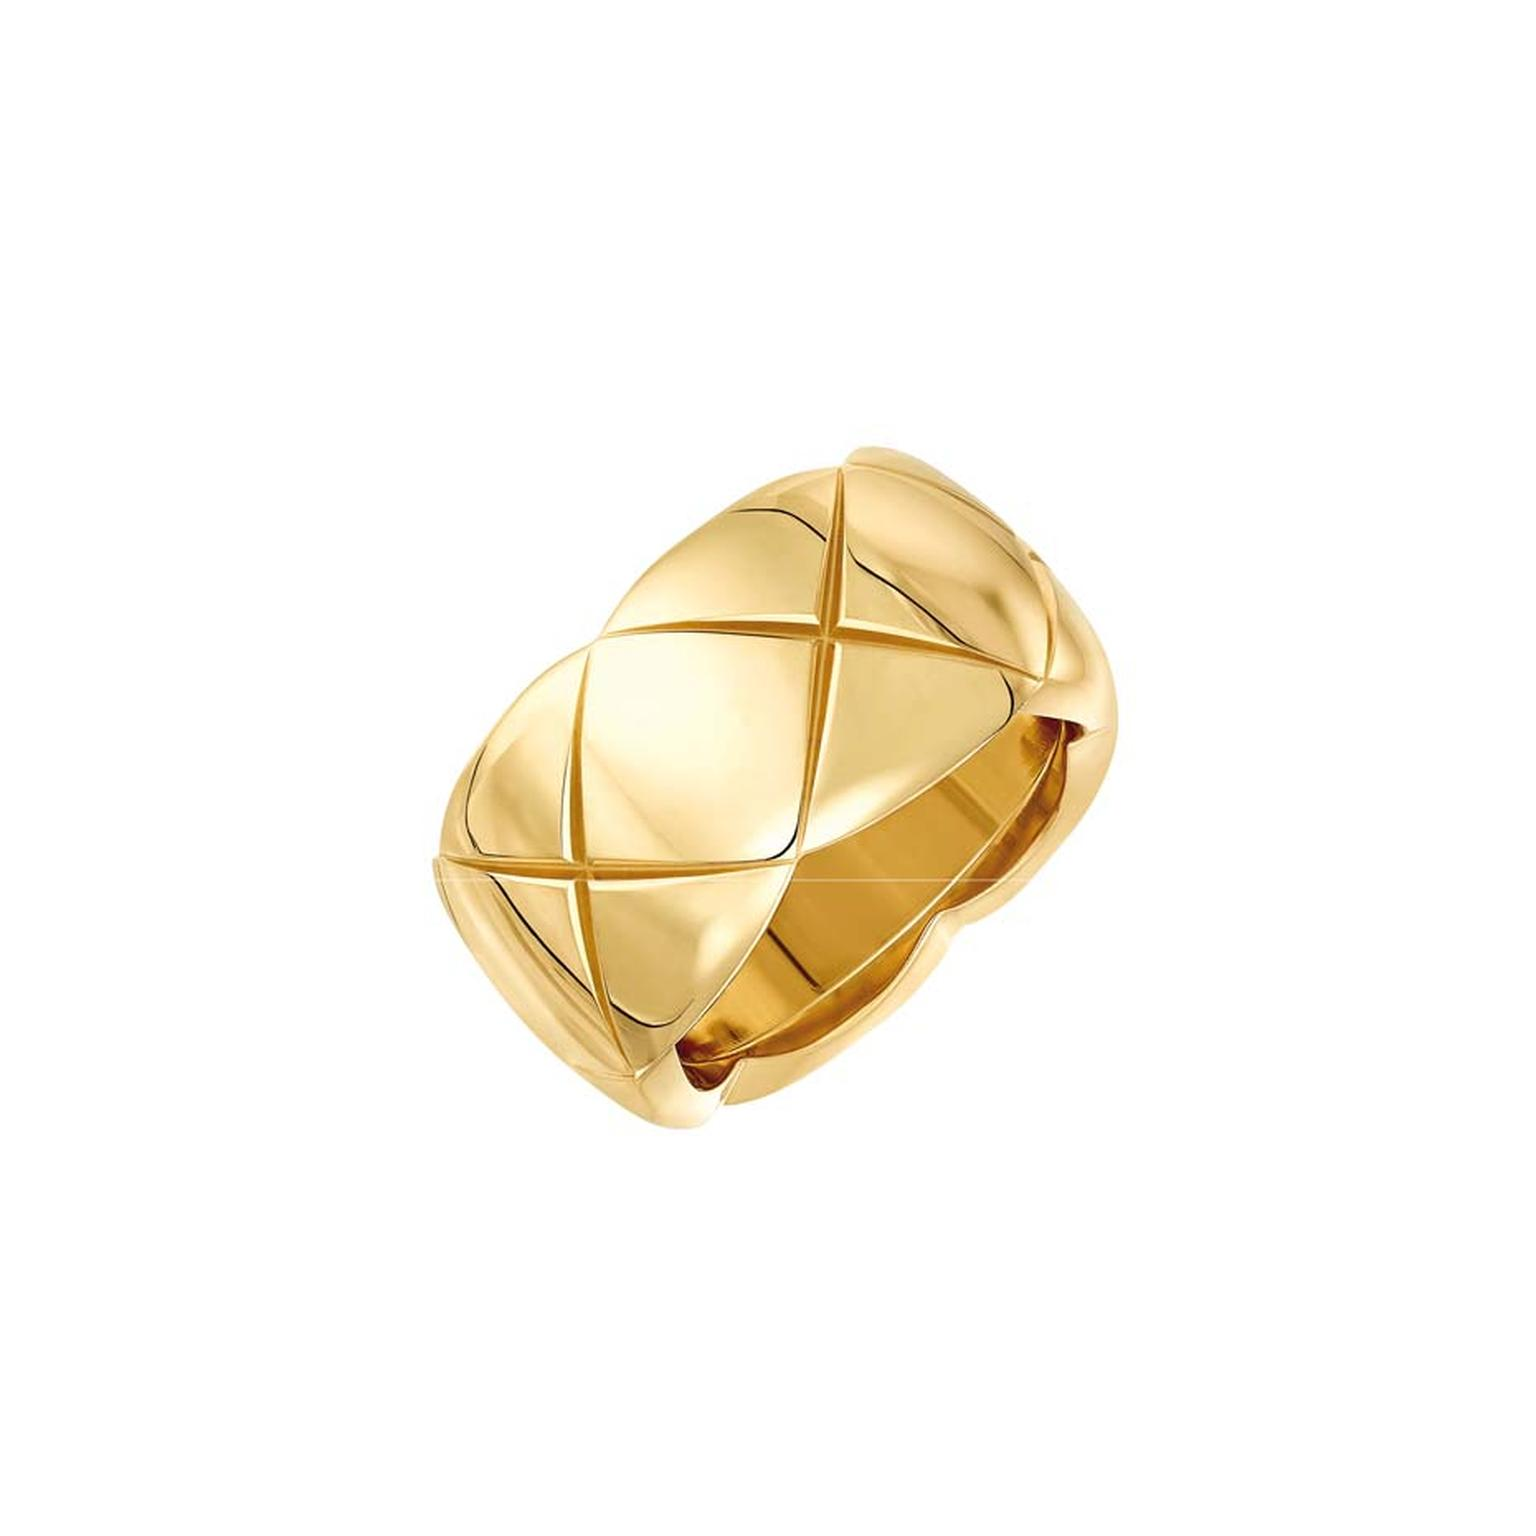 Small yellow gold Coco Crush ring from Chanel's new fine jewellery collection, available for a limited time only at Net-a-Porter.